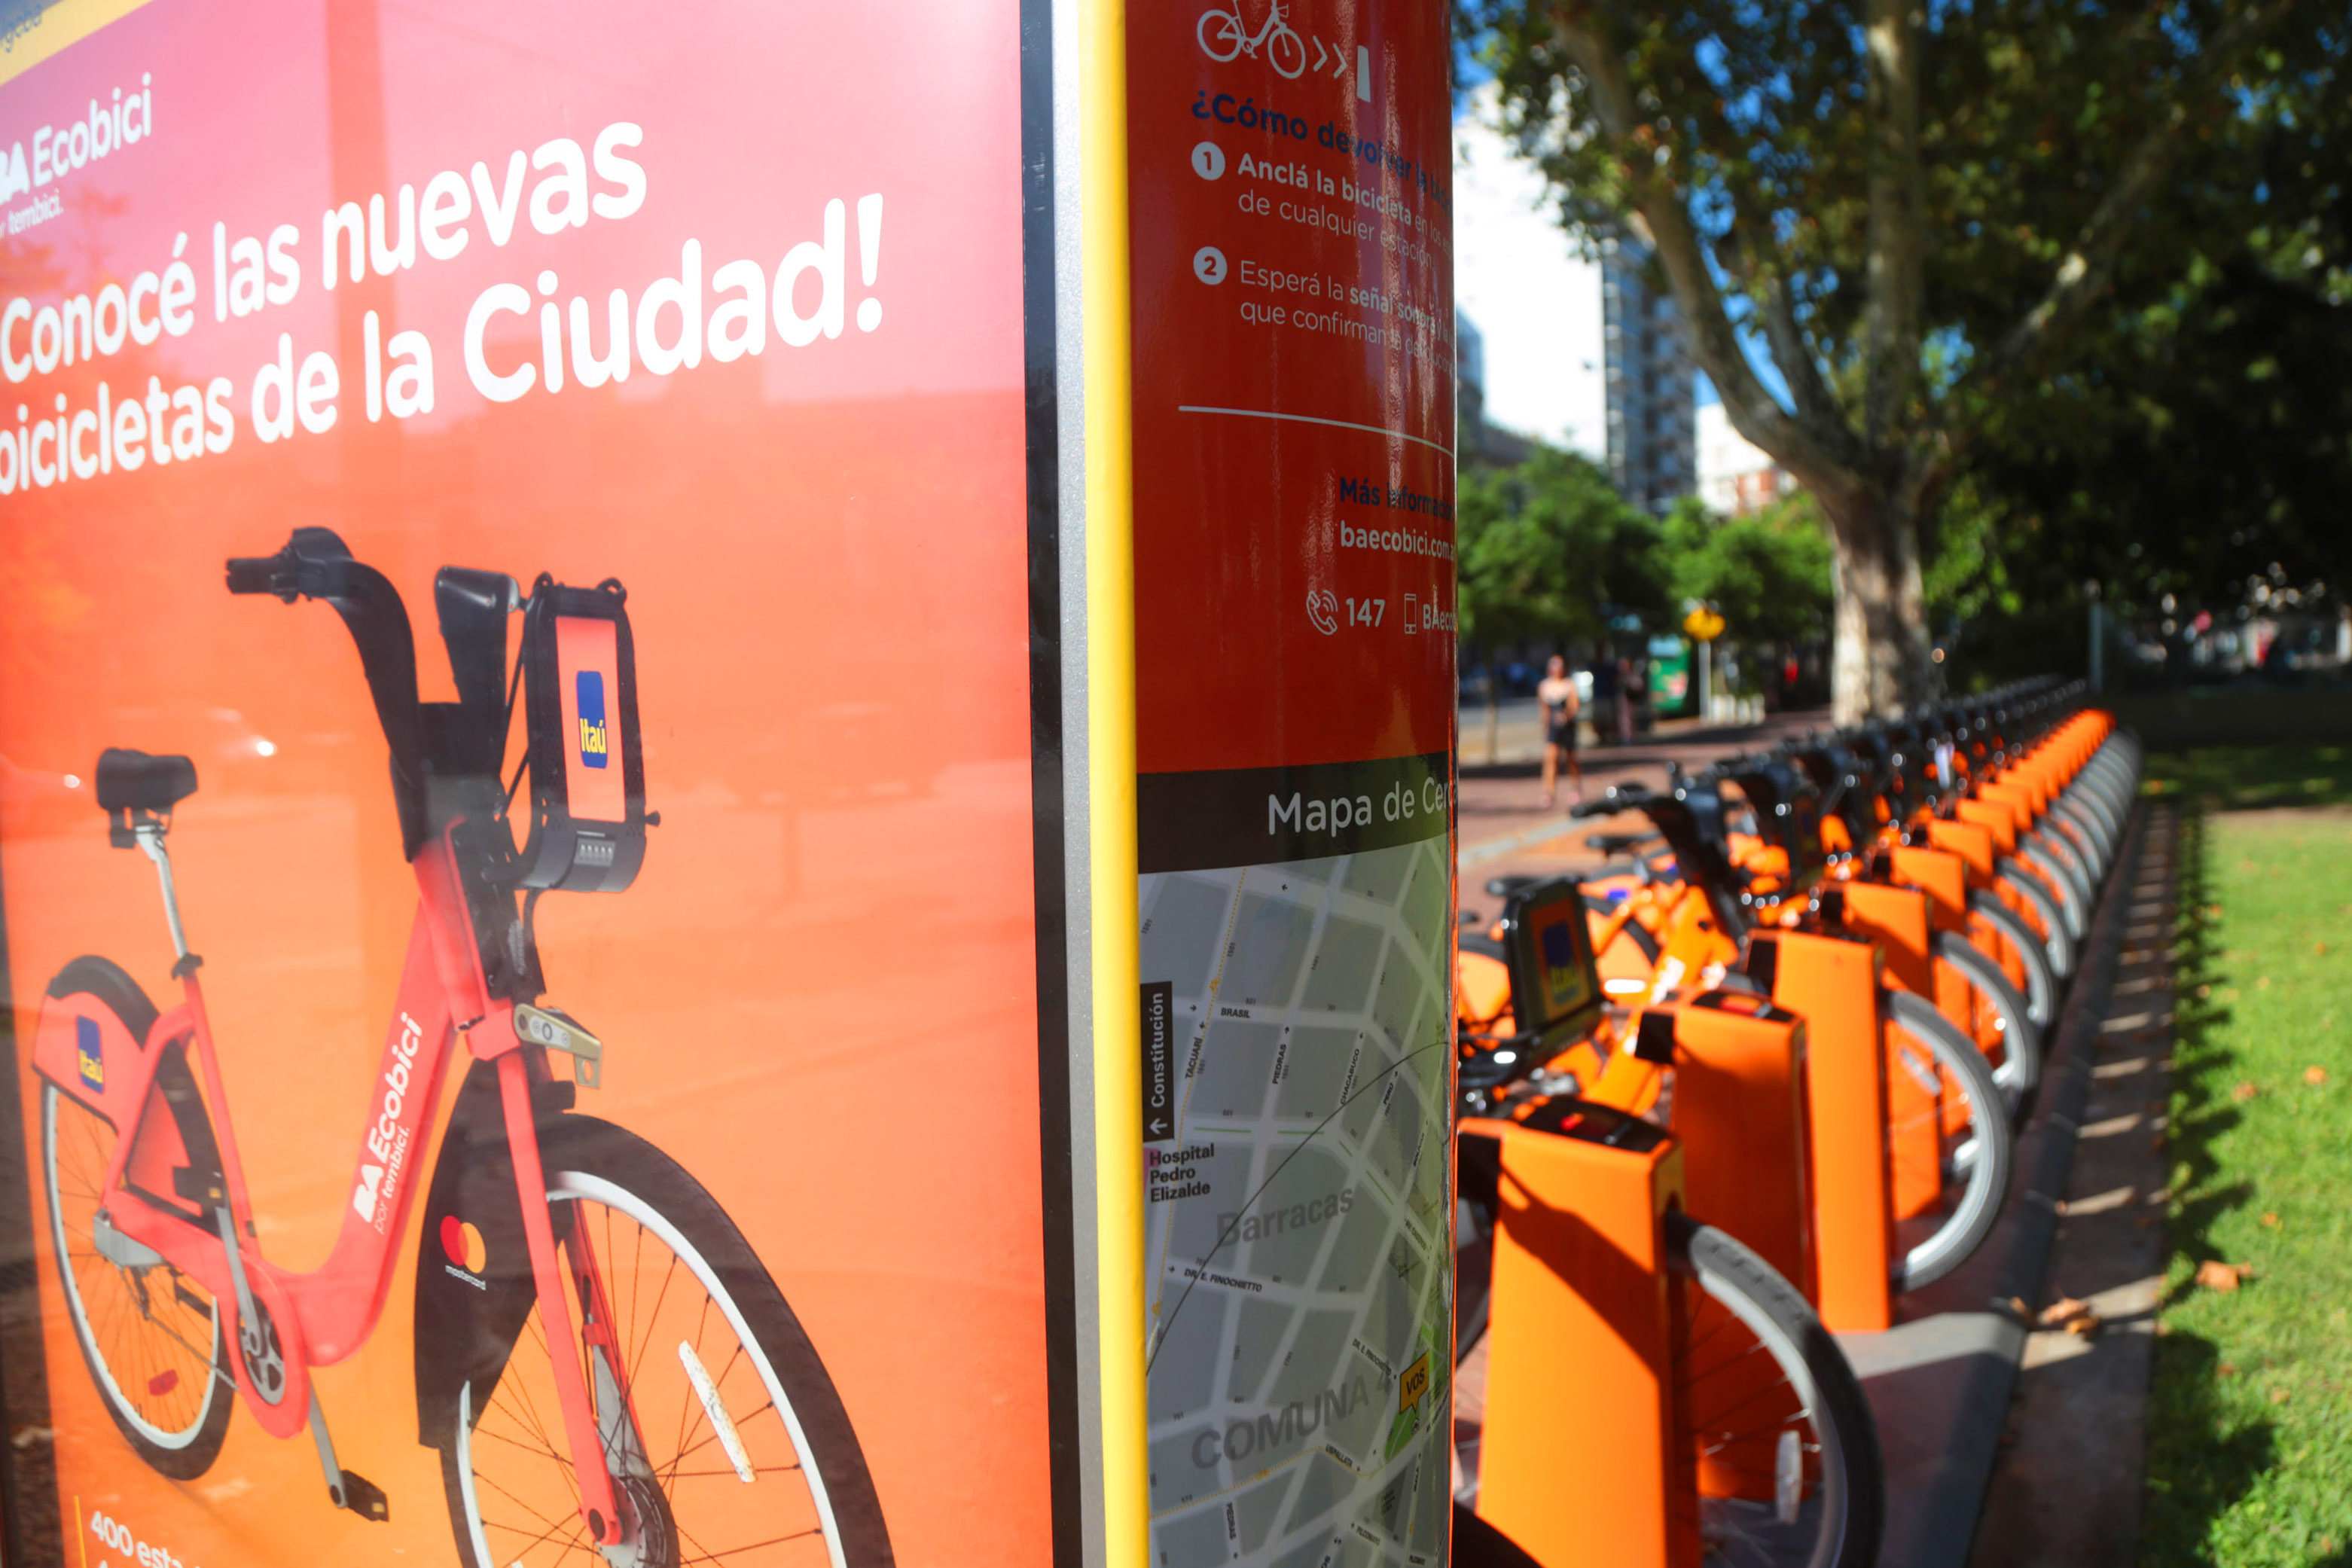 How works the free public bicycles system in Buenos Aires?